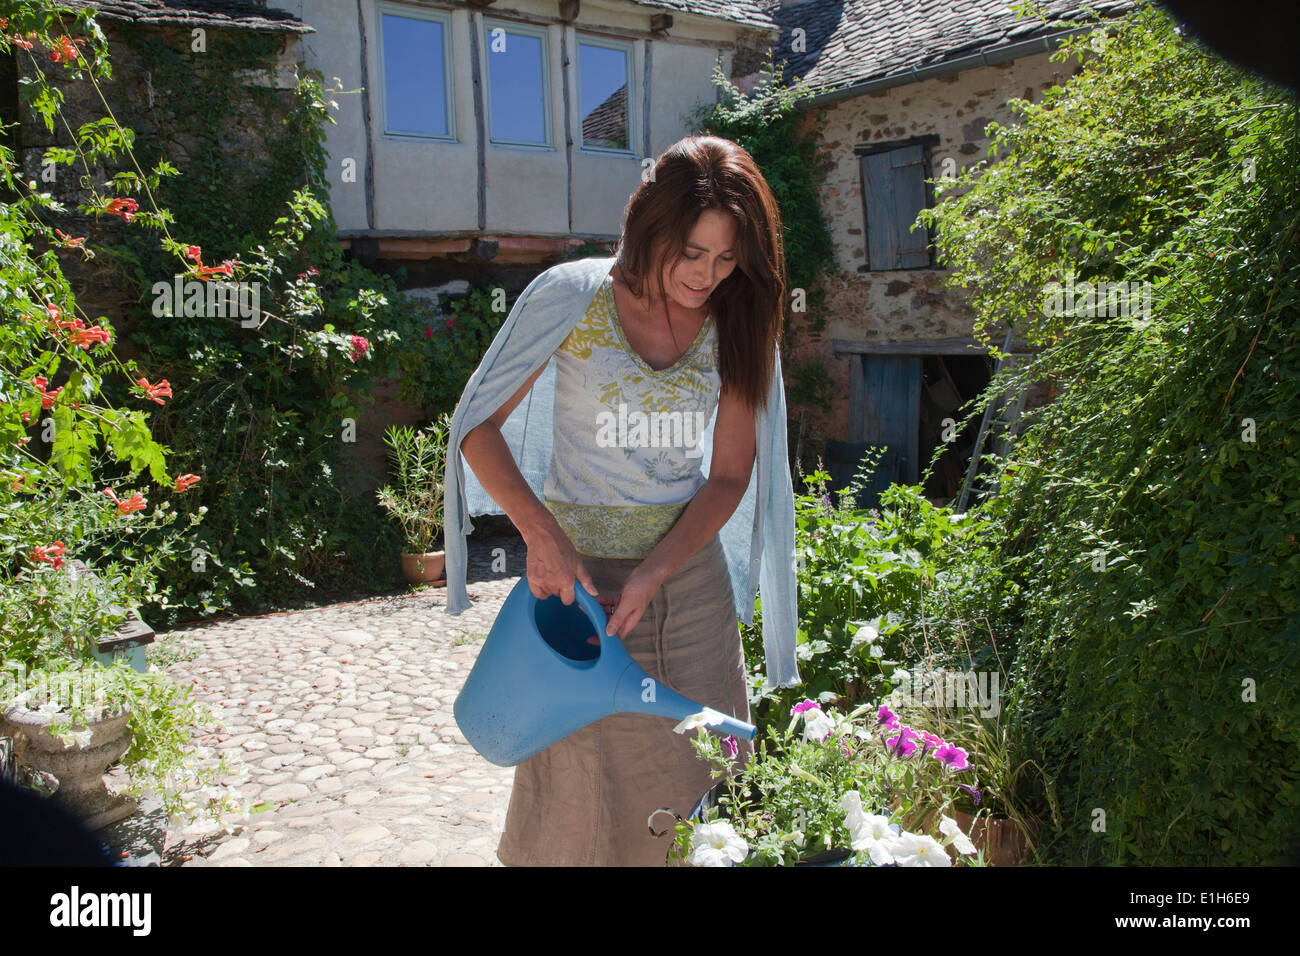 Mature adult woman watering garden plants - Stock Image